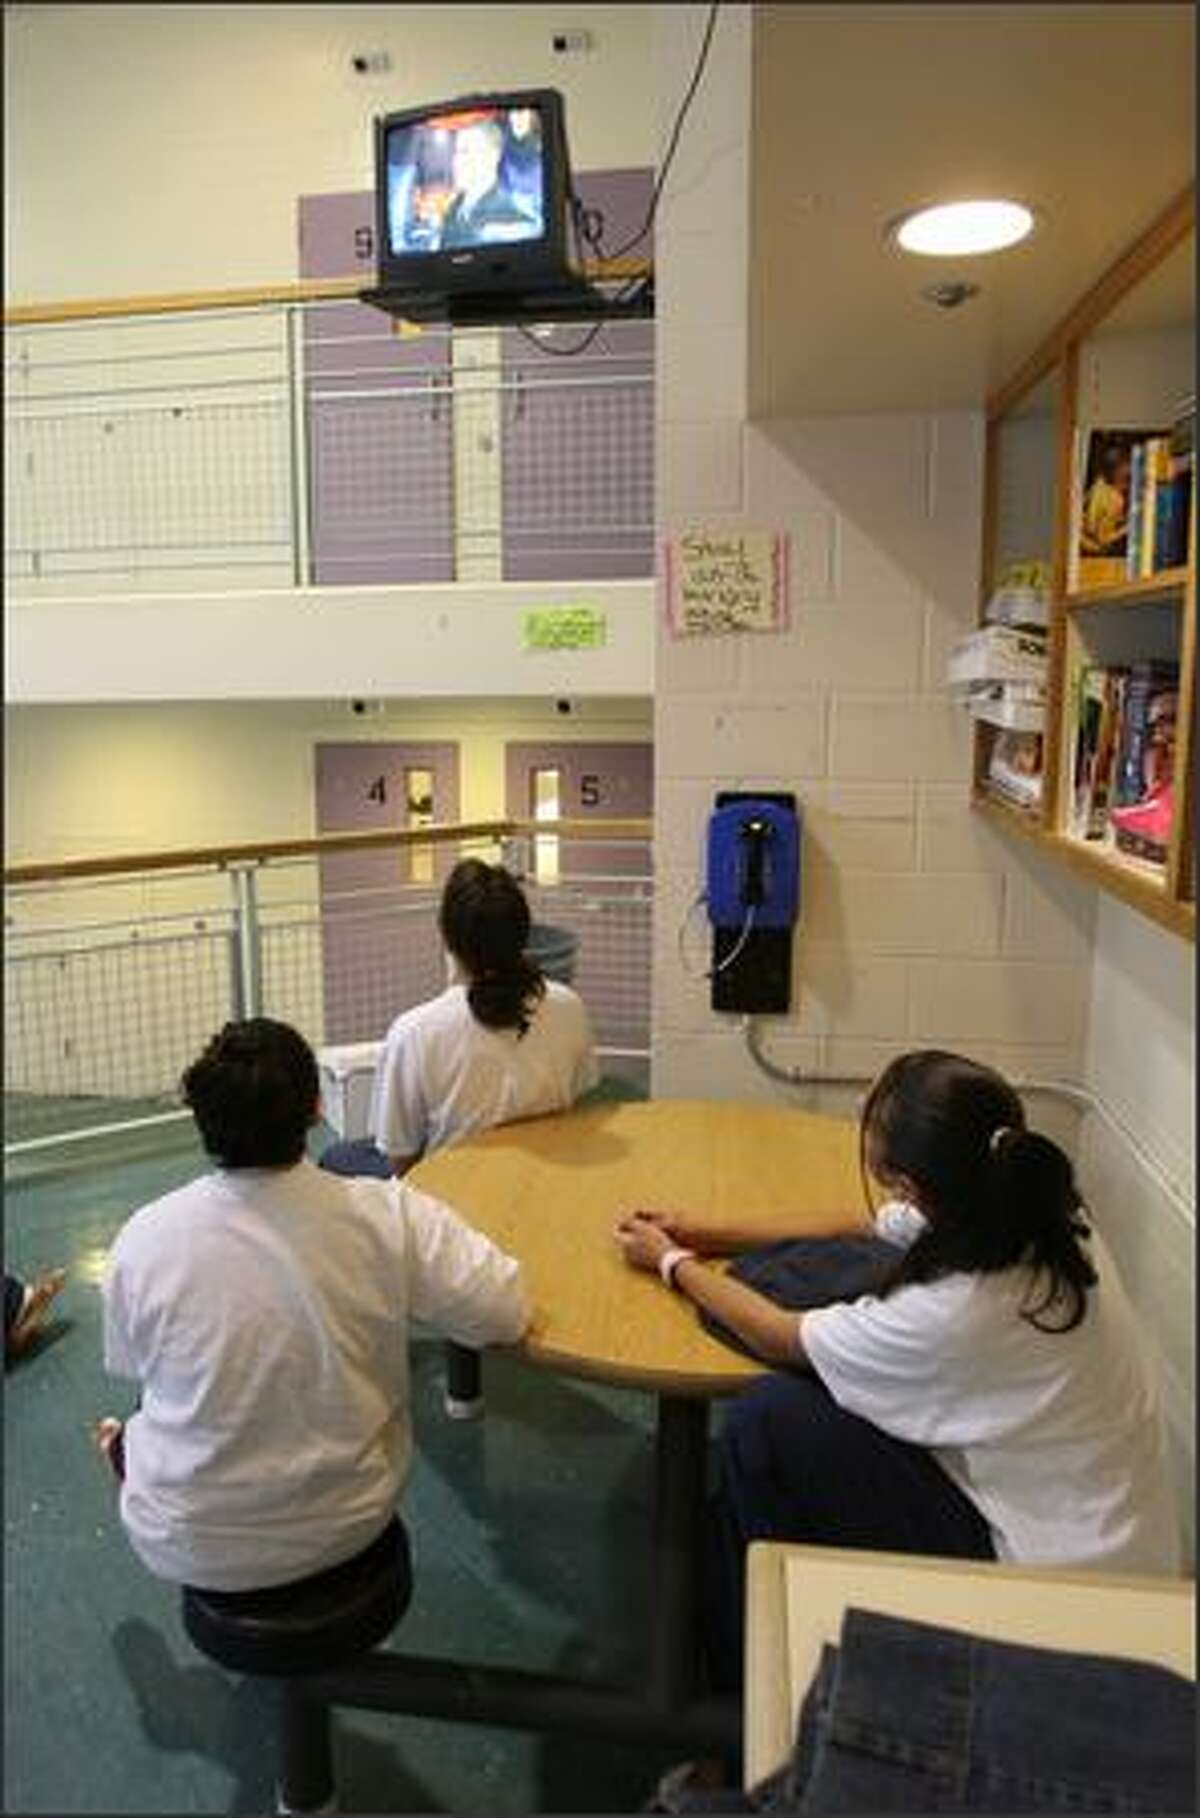 A view inside the King County Youth Services Center, where Seattle Public Schools operates the Alder Academy.